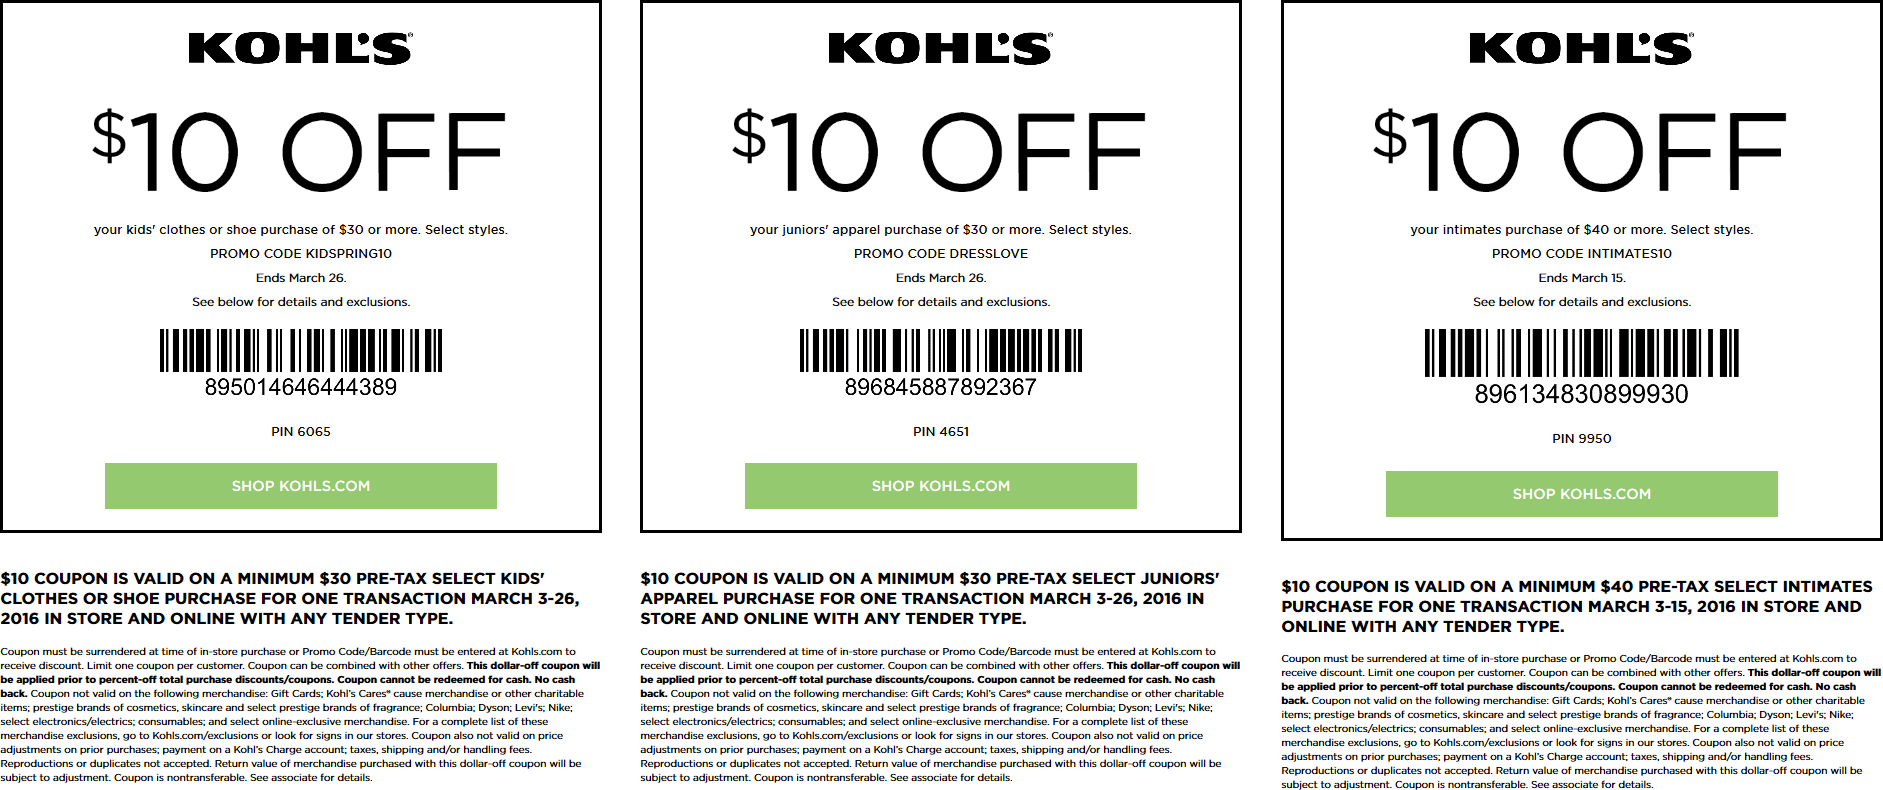 kohls $10 off $30 coupon june 2019